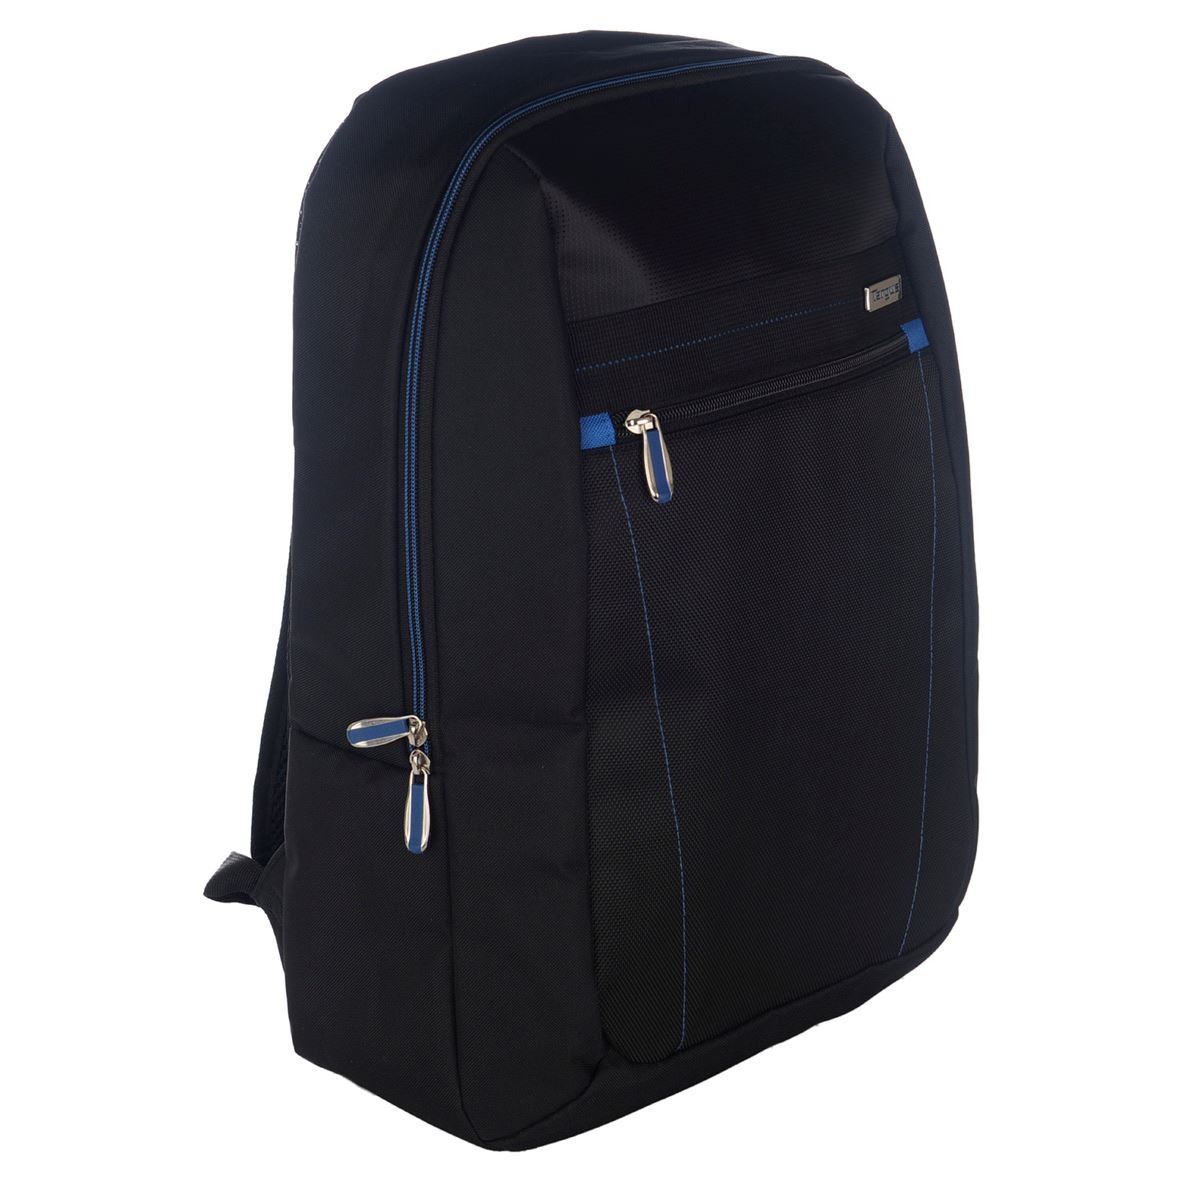 Prospect 156 Laptop Backpack Black